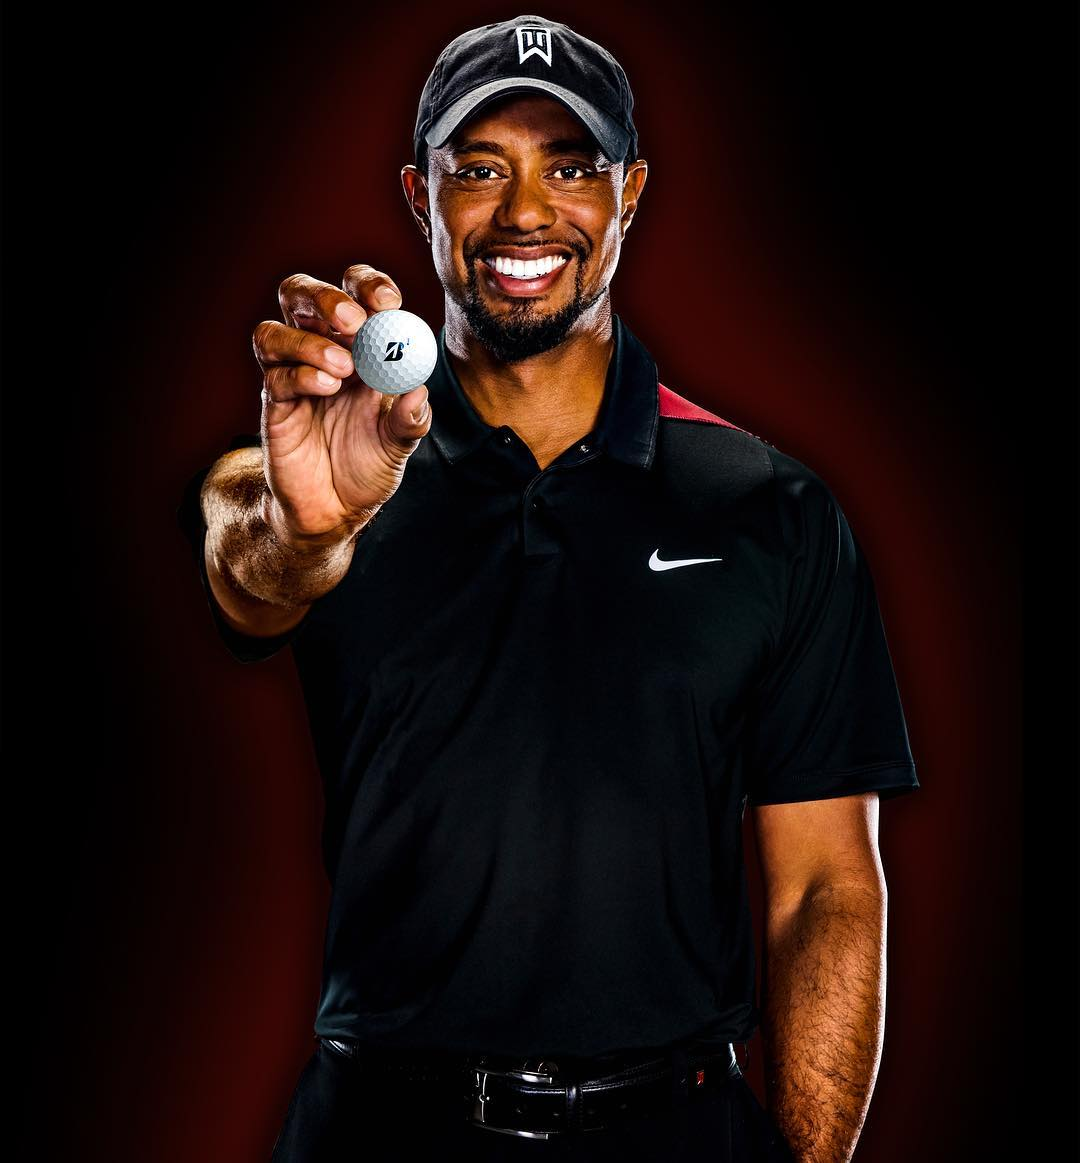 Tiger-Woods-smiling